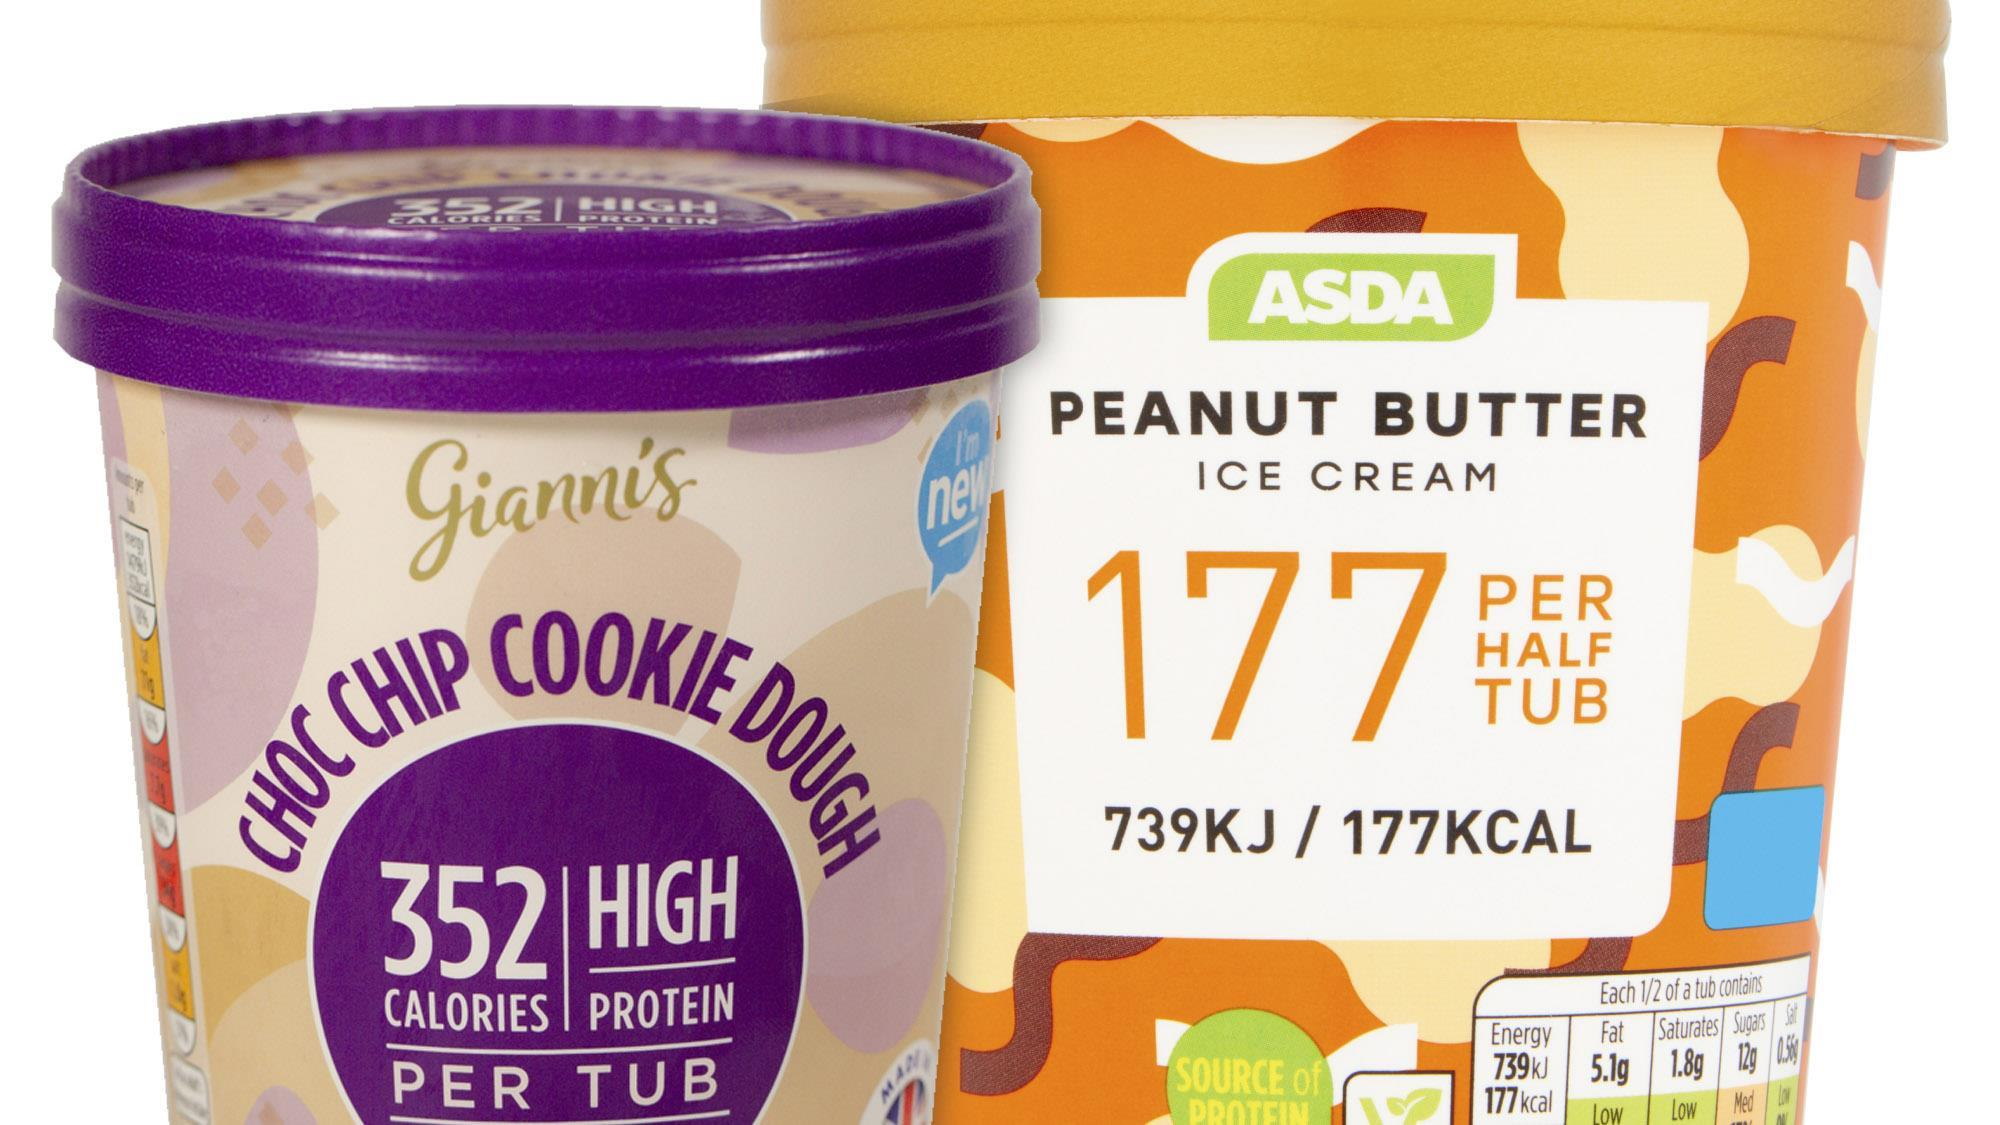 Aldi And Asda Take On Halo Top With Own Label Low Cal Ice